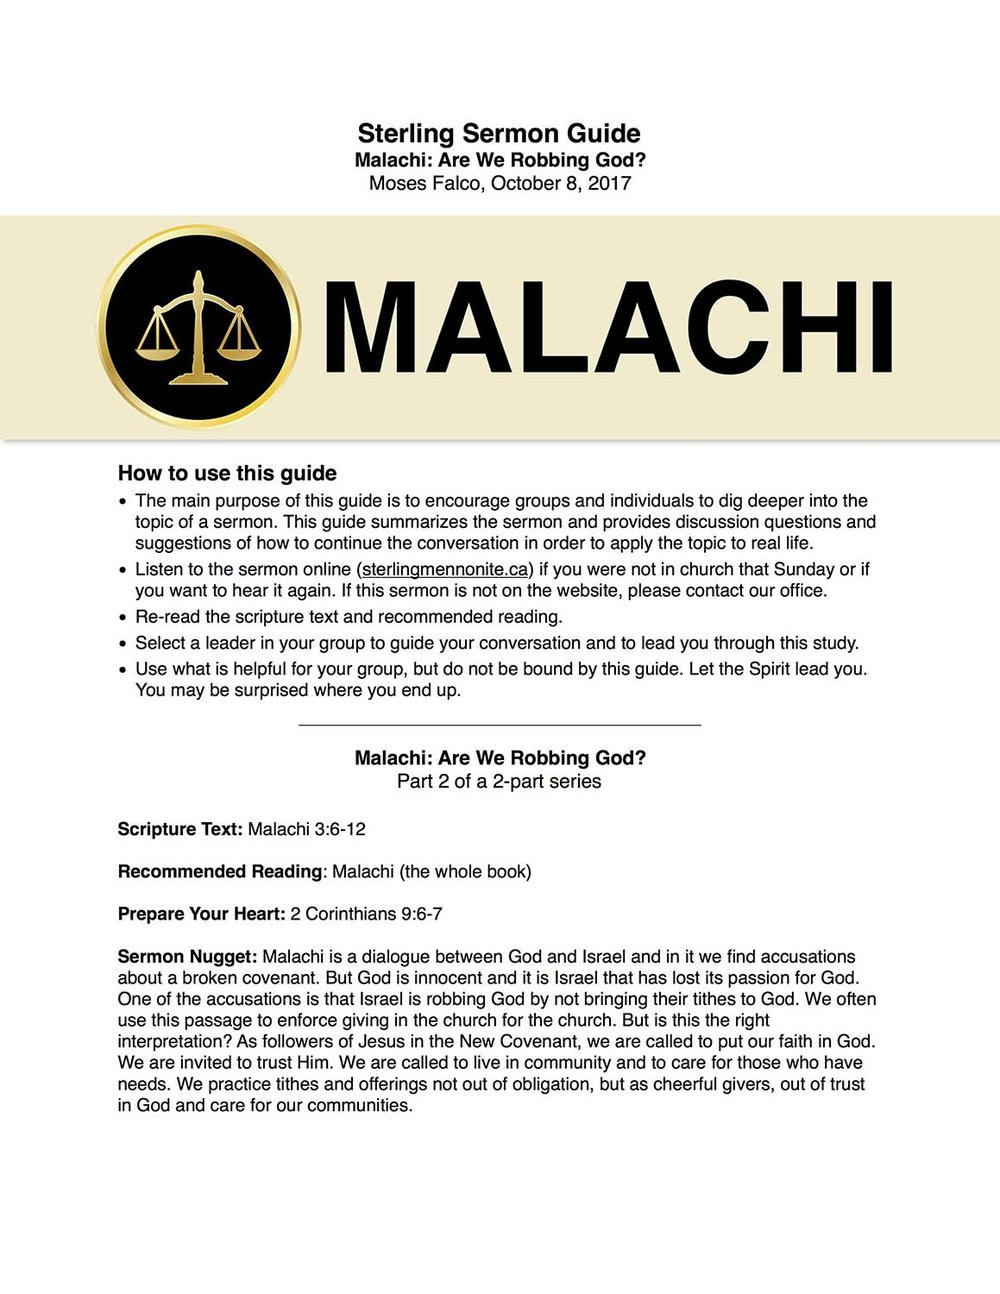 Malachi: Are we Robbing God?